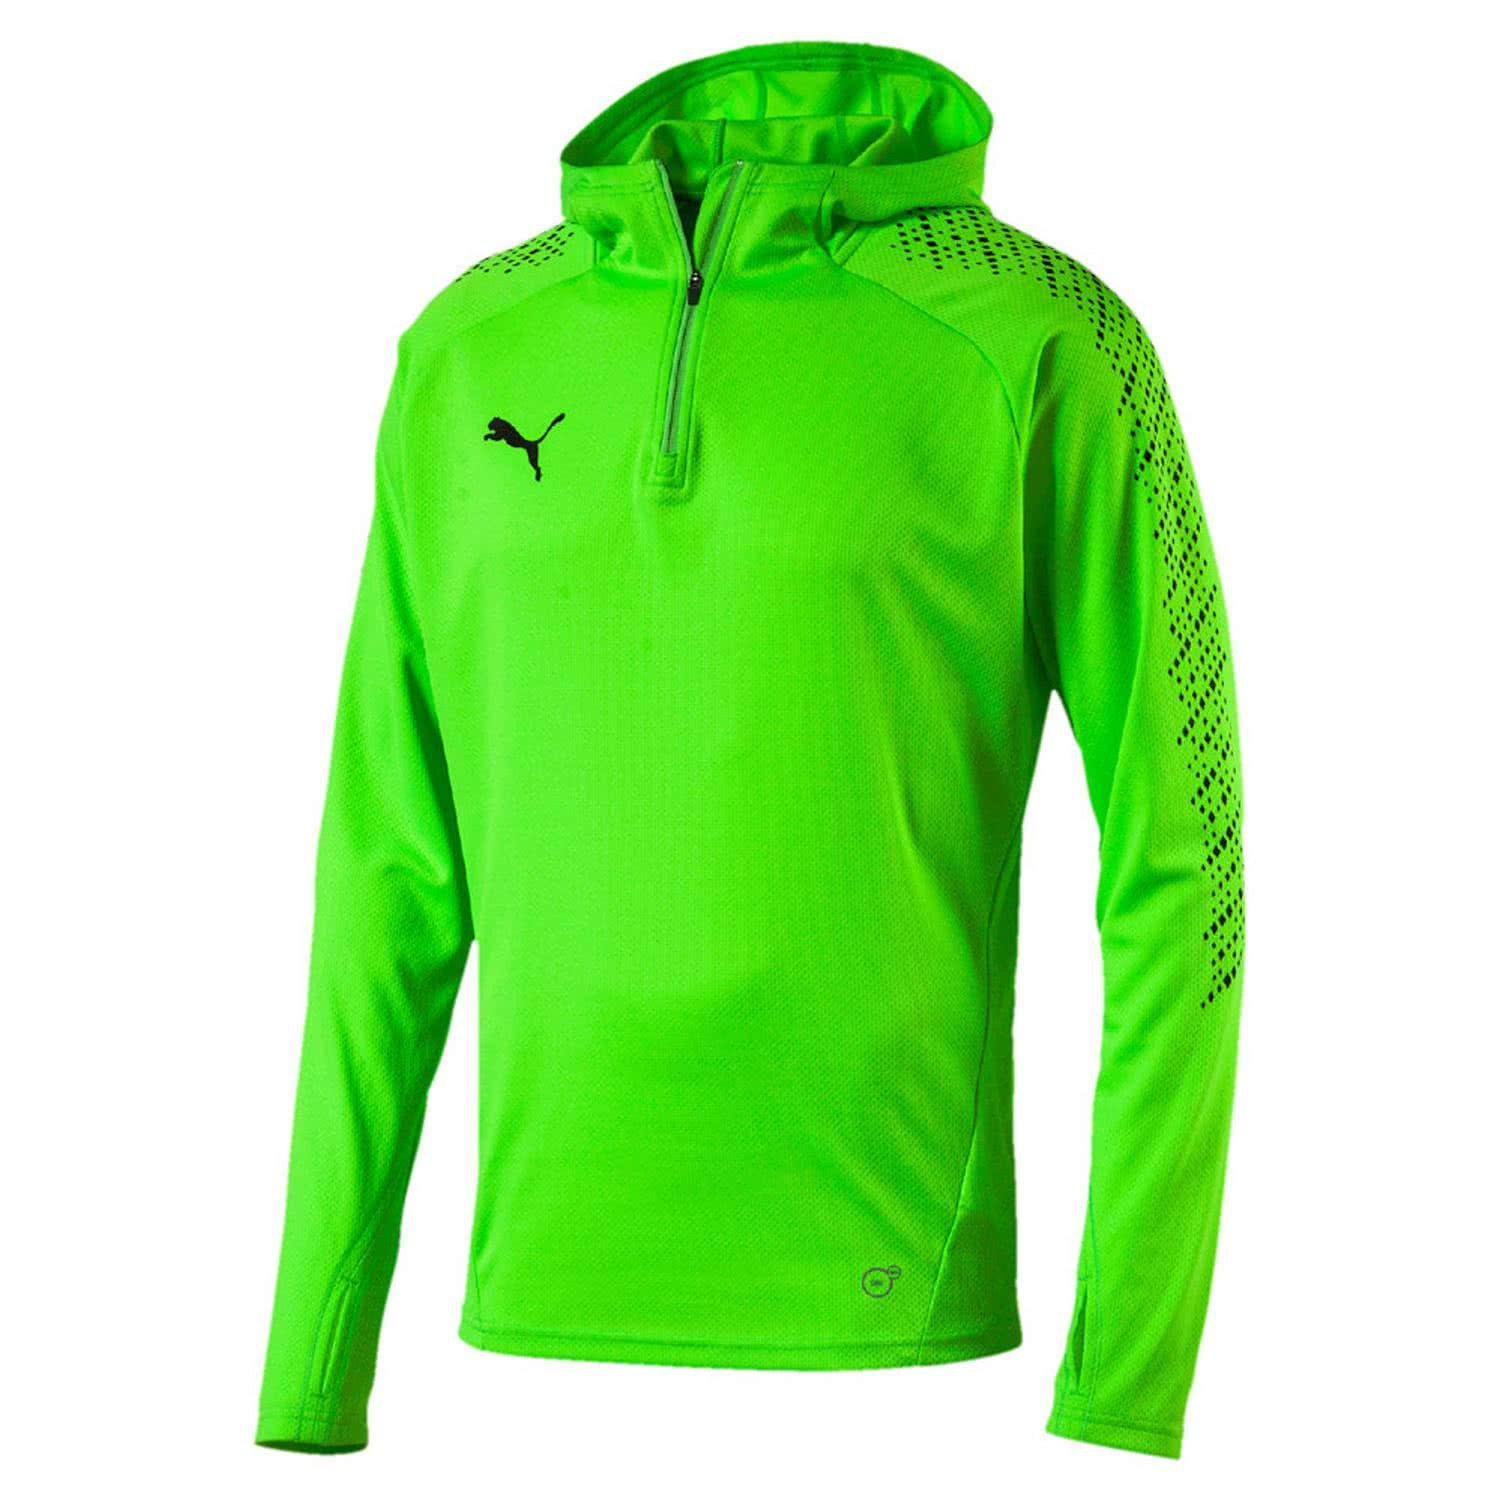 PUMA, It Evotrg Hoodie, Felpa Uomo con Cappuccio: Amazon.it